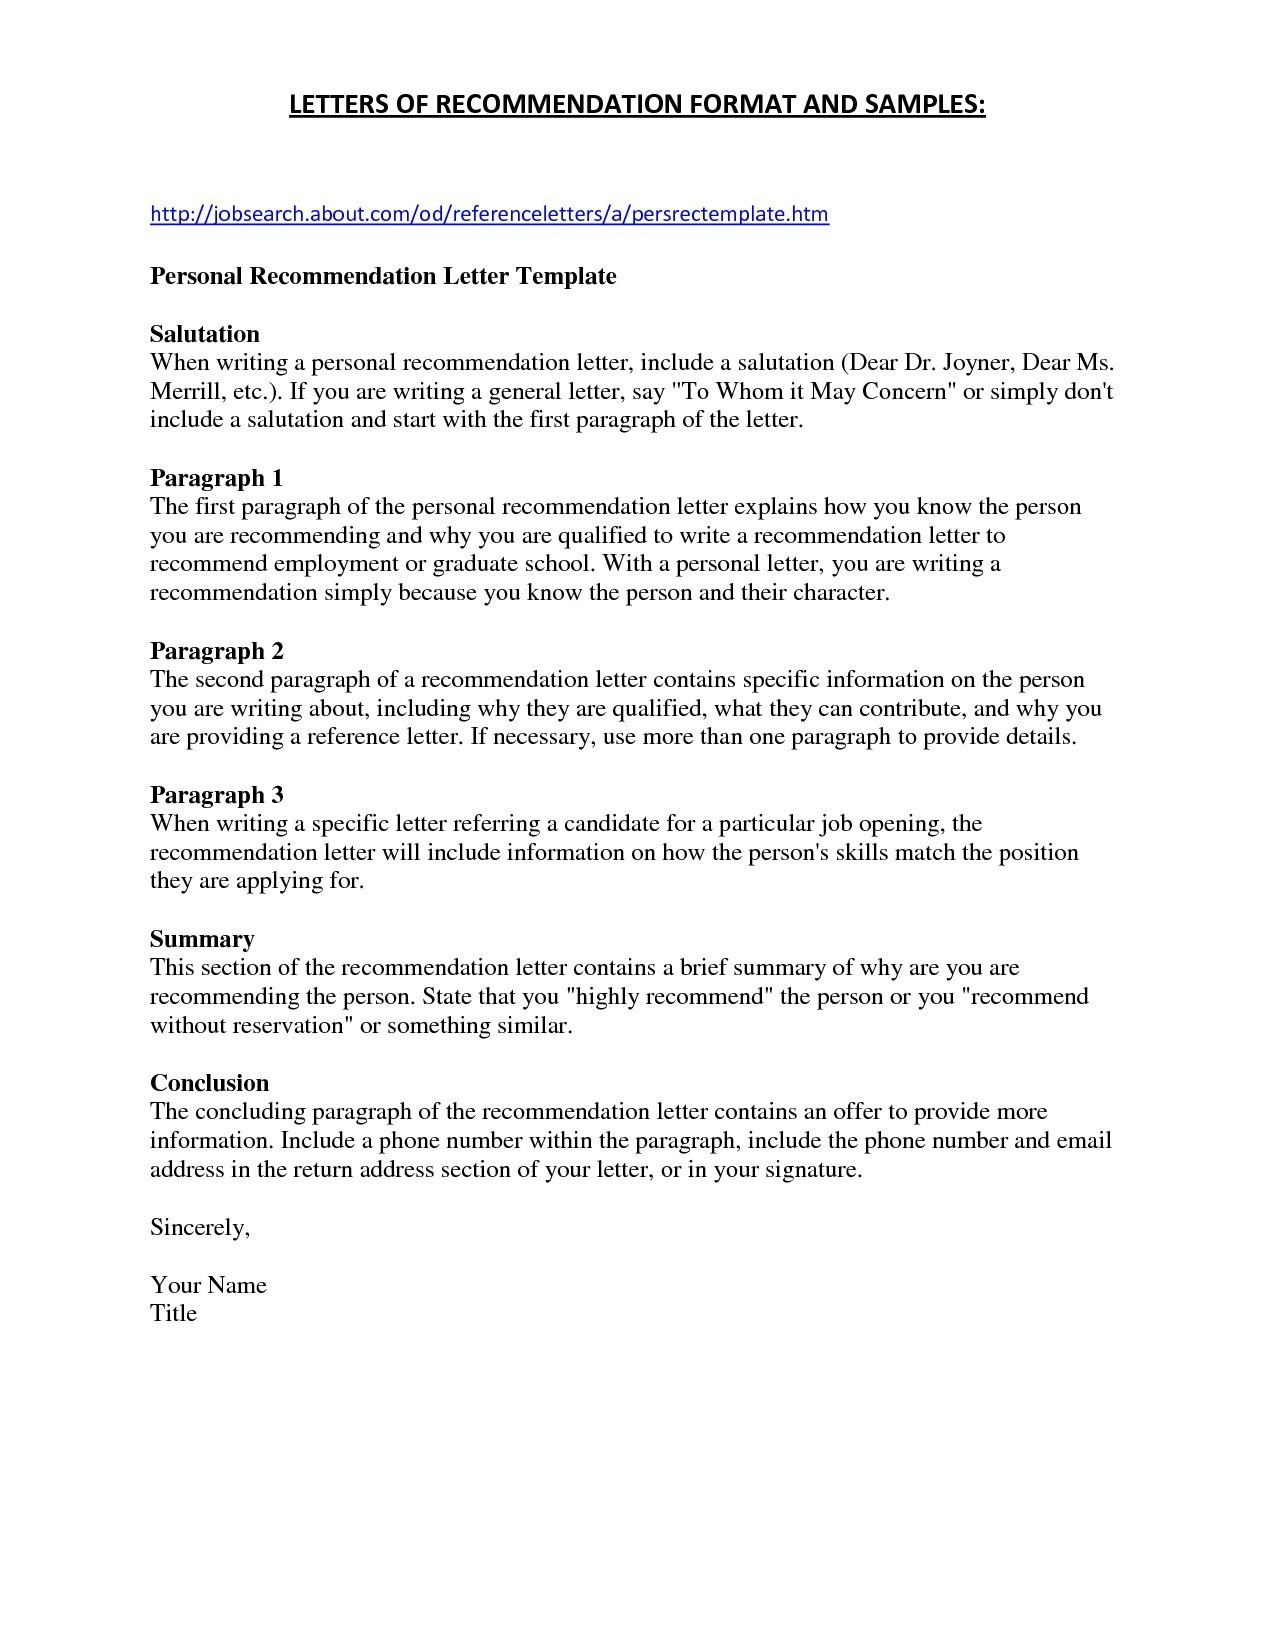 resume self descriptive words Collection-Self Descriptive Words for Resume 19-i